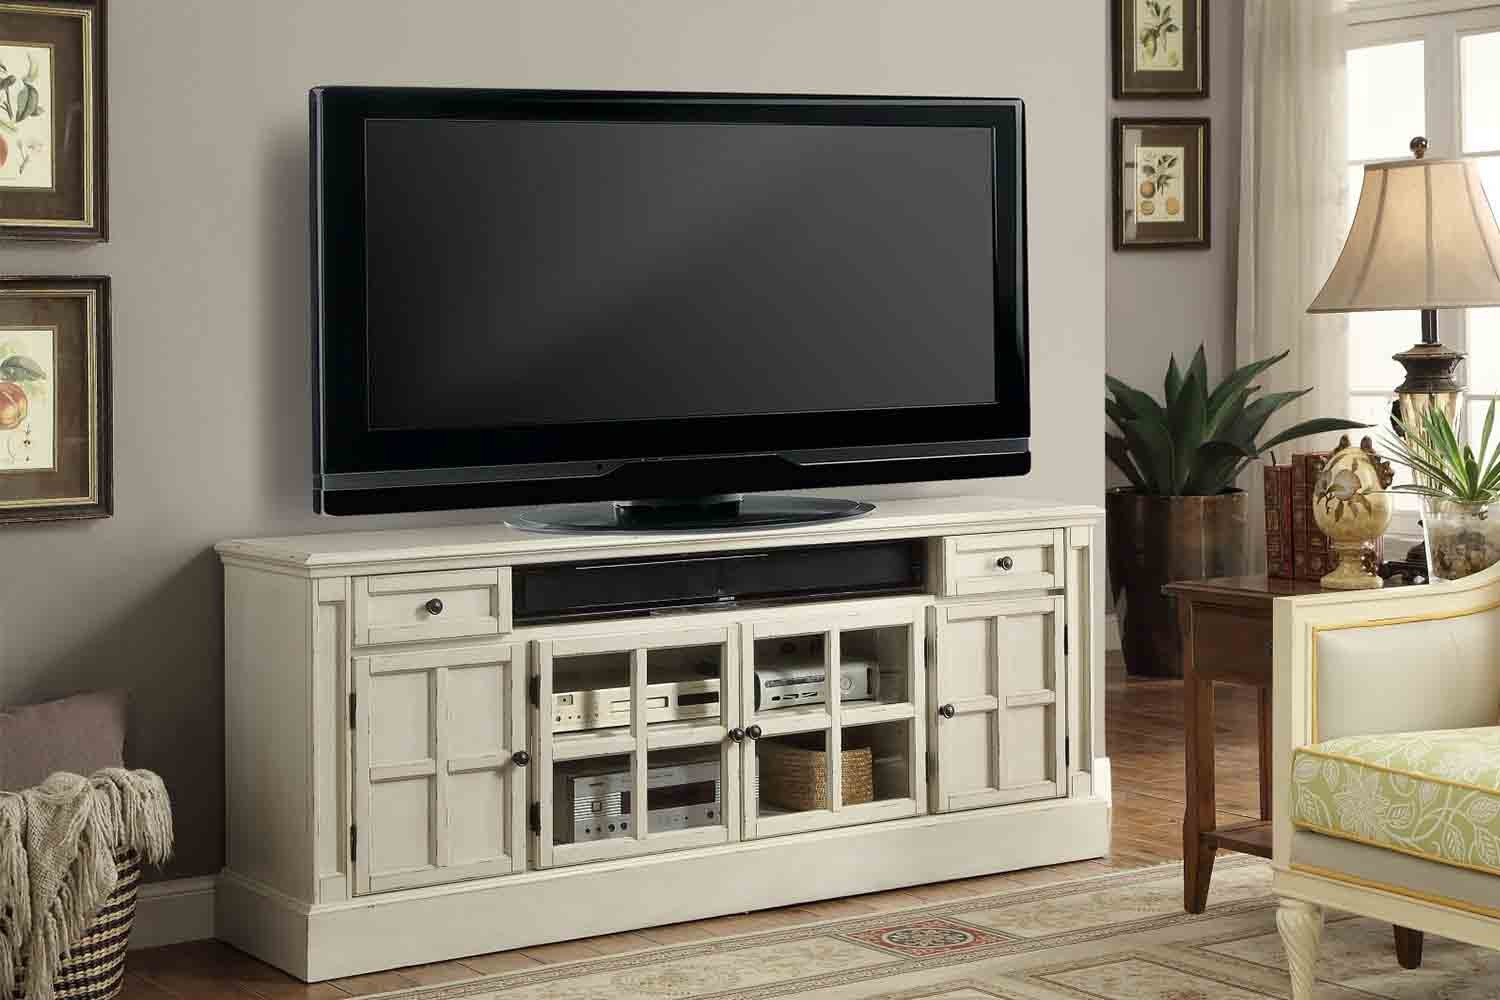 straight s console pin tvs that finish type to lines and with go any pinterest neutral well features of tv stands rooms bill room